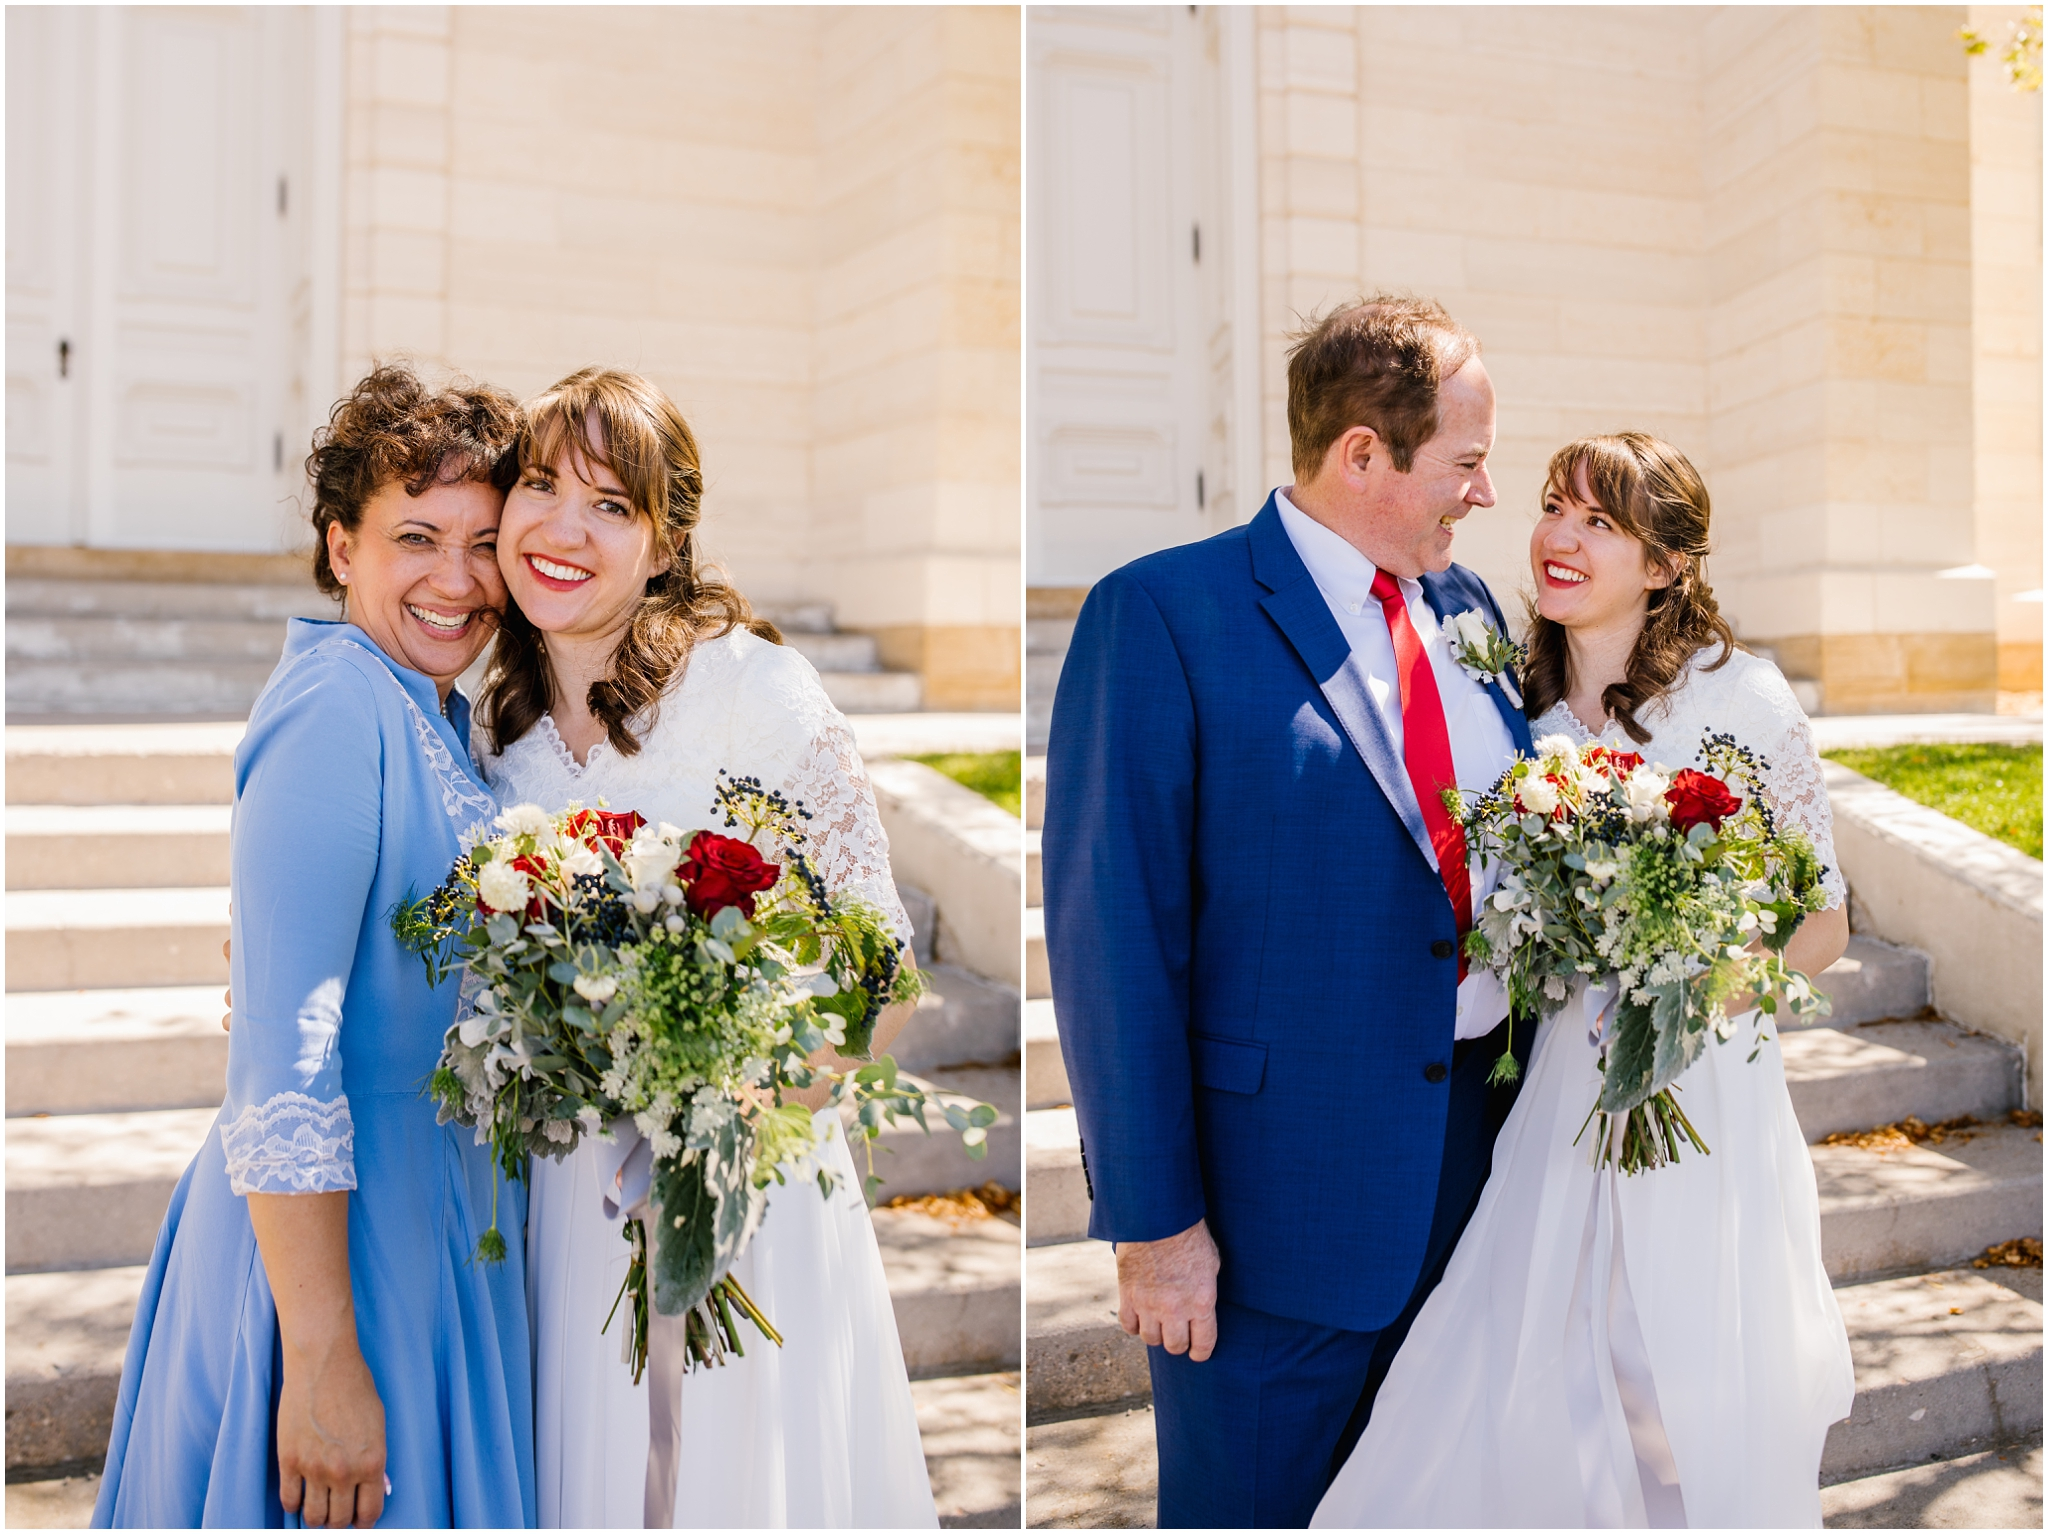 BrynneWinston-30_Lizzie-B-Imagery-Utah-Wedding-Photographer-Utah-County-Manti-Temple.jpg